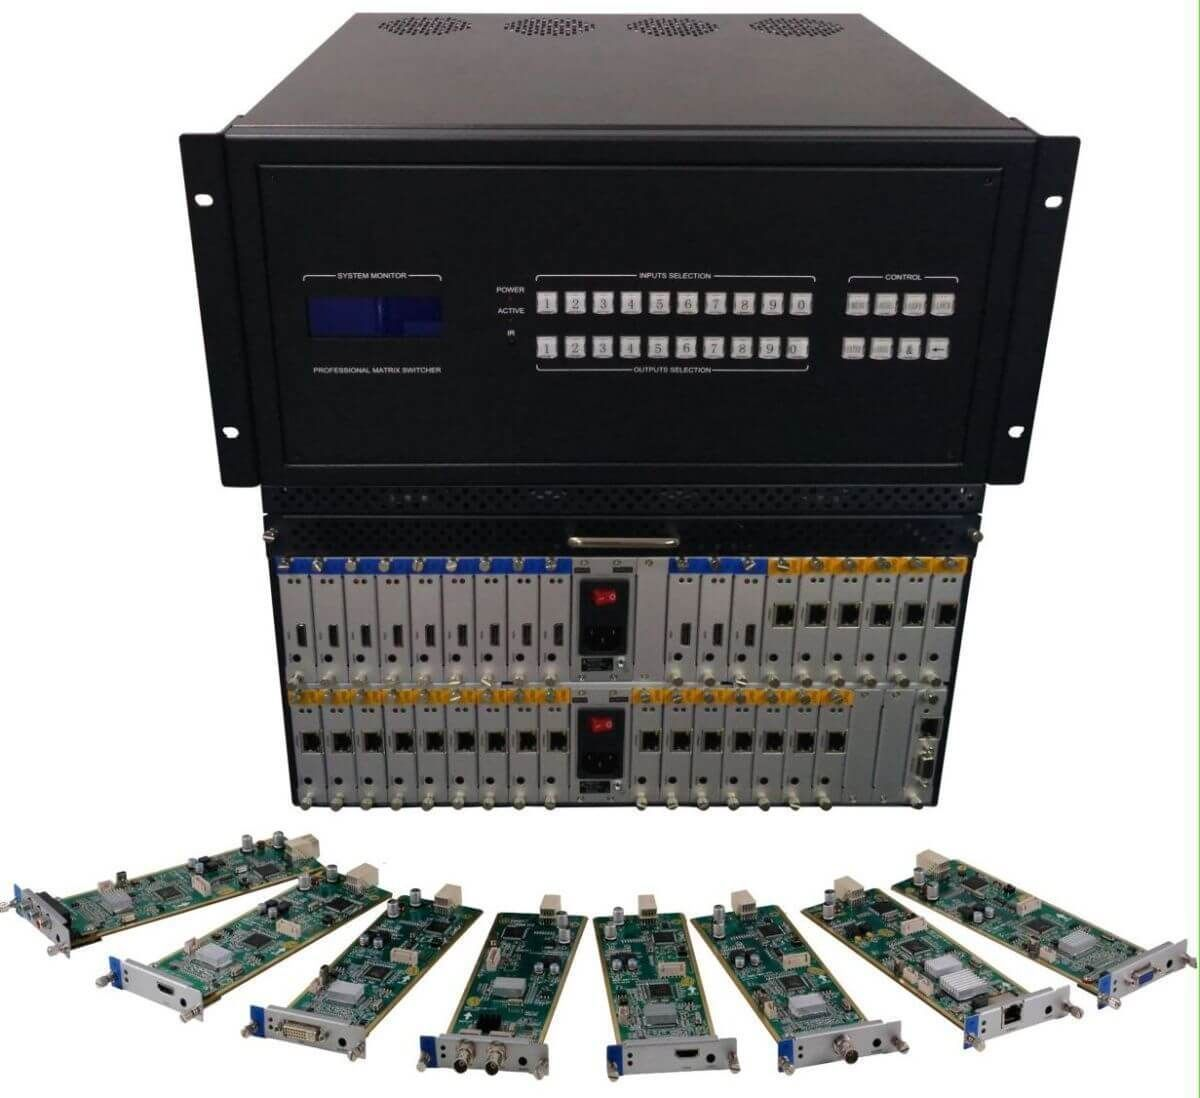 24x24 HDMI Matrix Switcher with Video Wall Processor